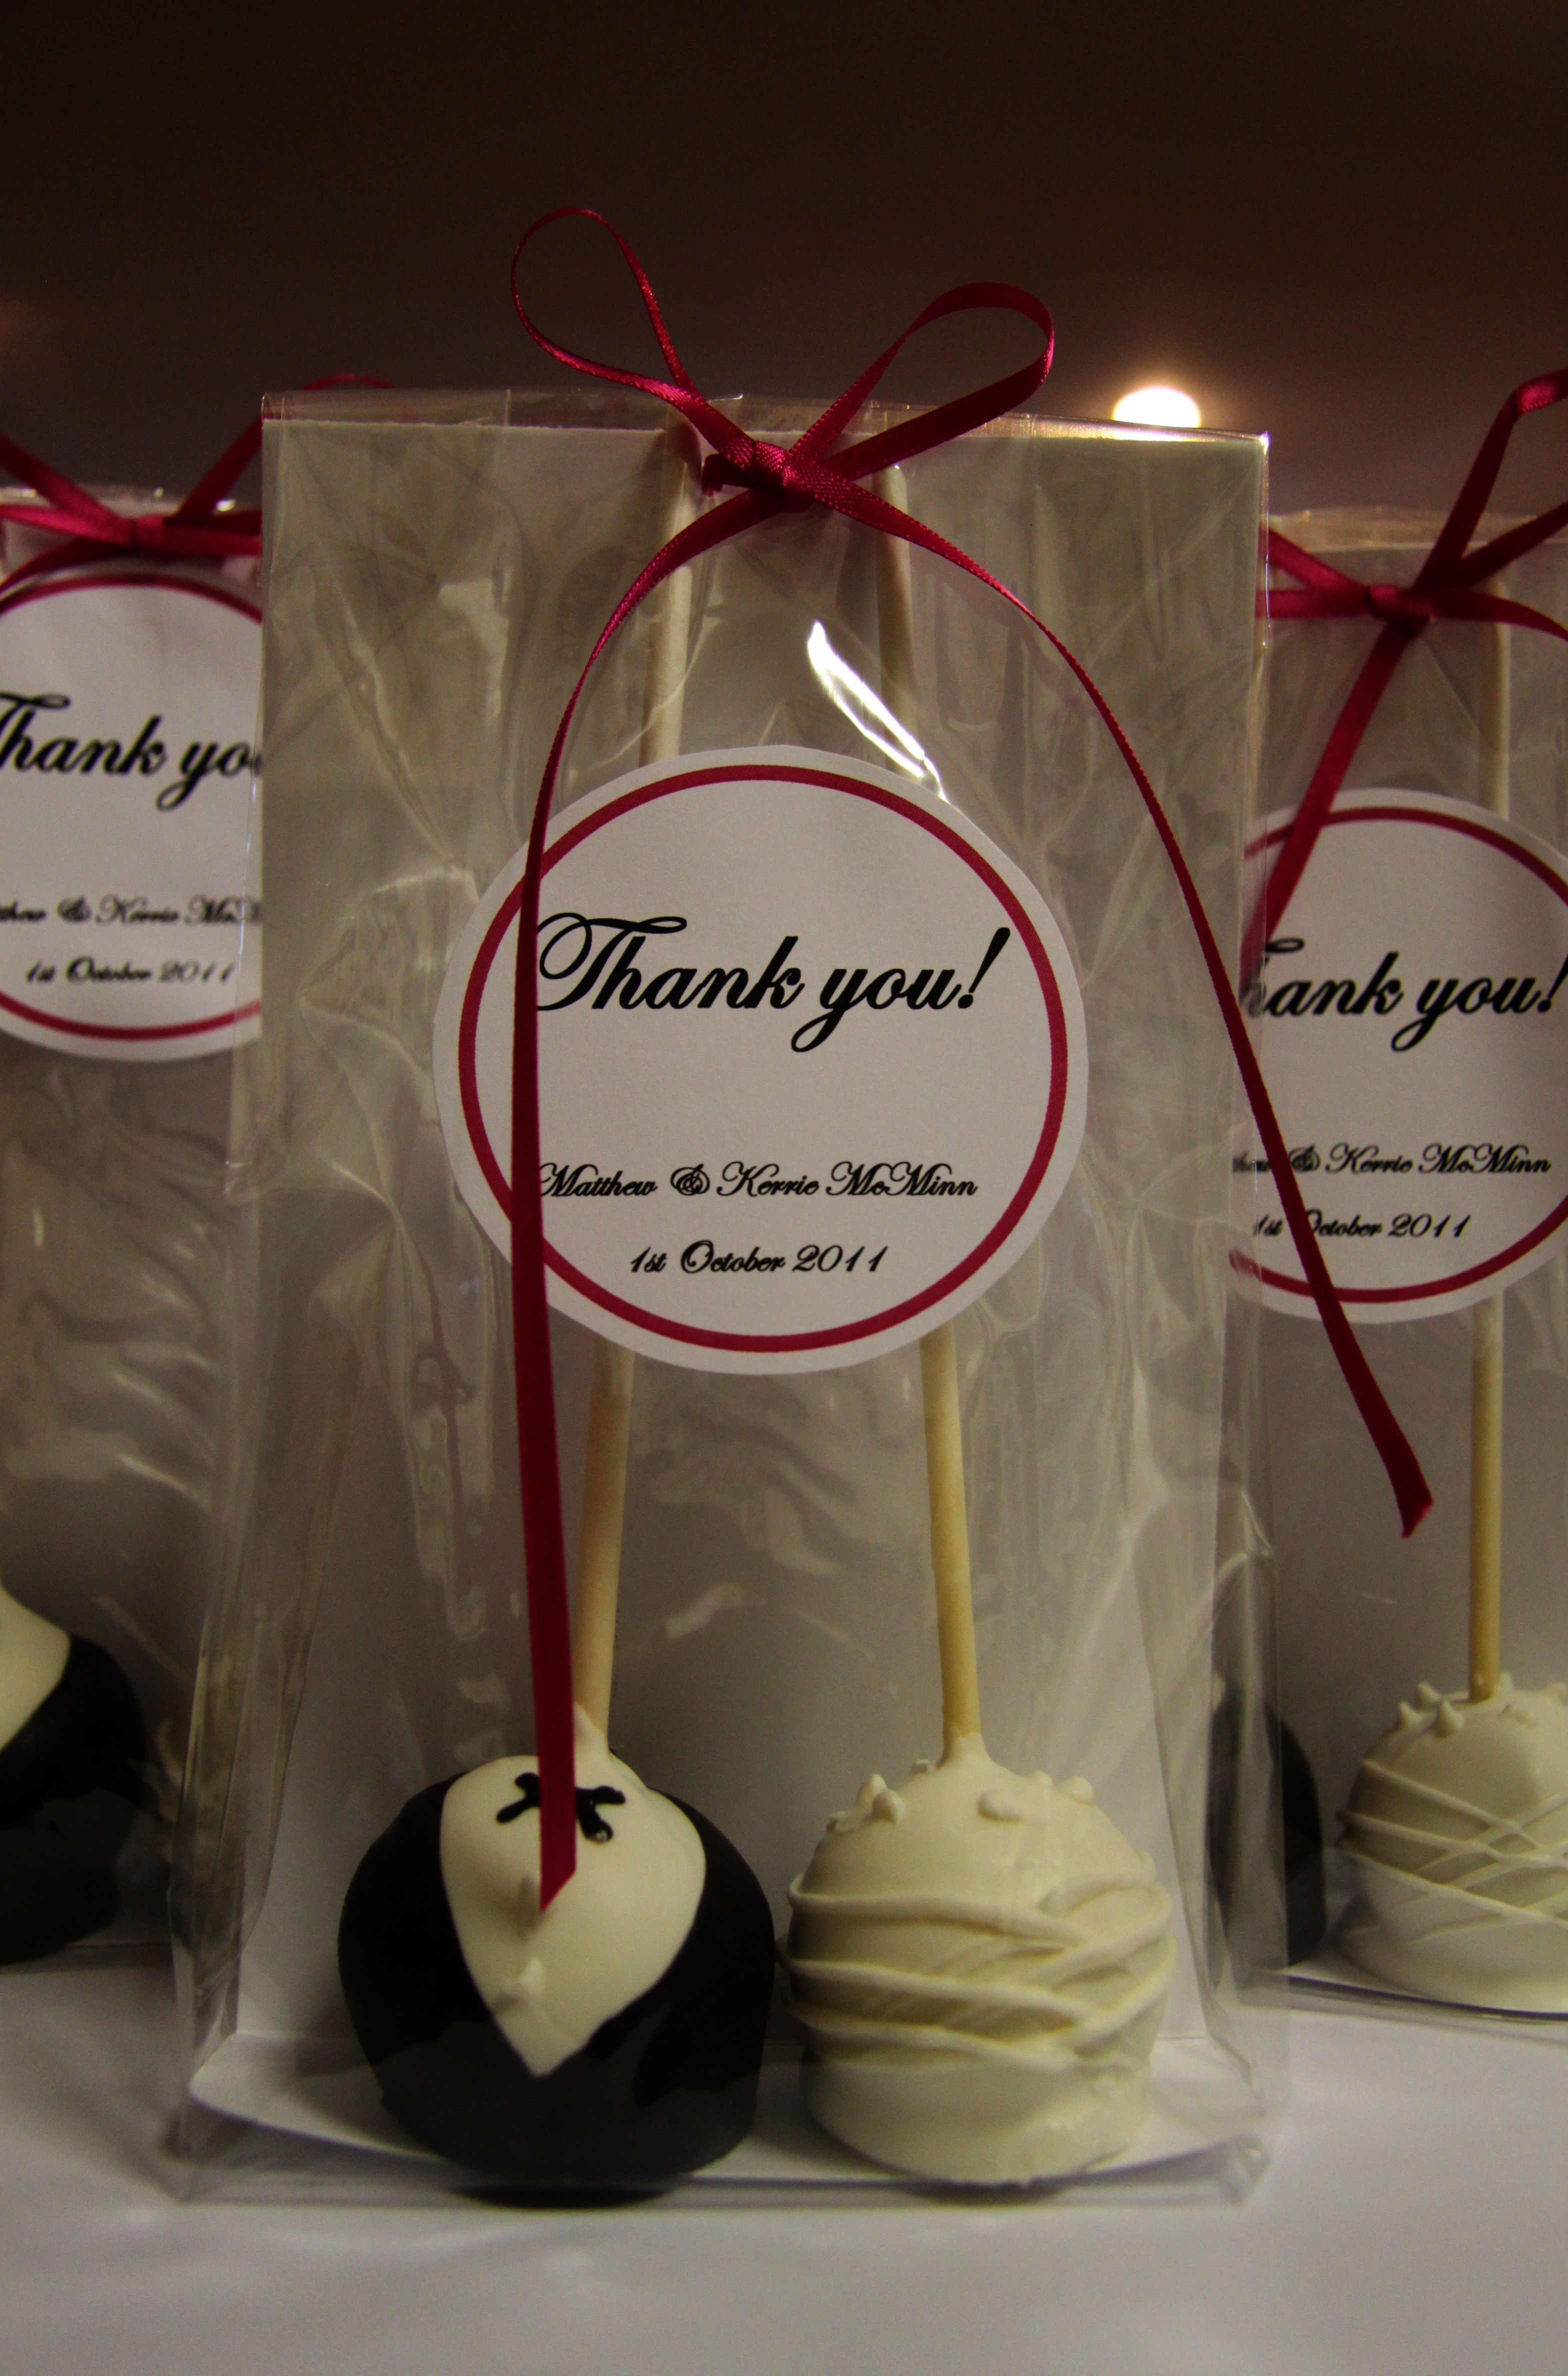 Great Wedding Favors Ideas For Guests Pinterest Creative Wedding Favors Wedding Favors Fall Cheap Favors